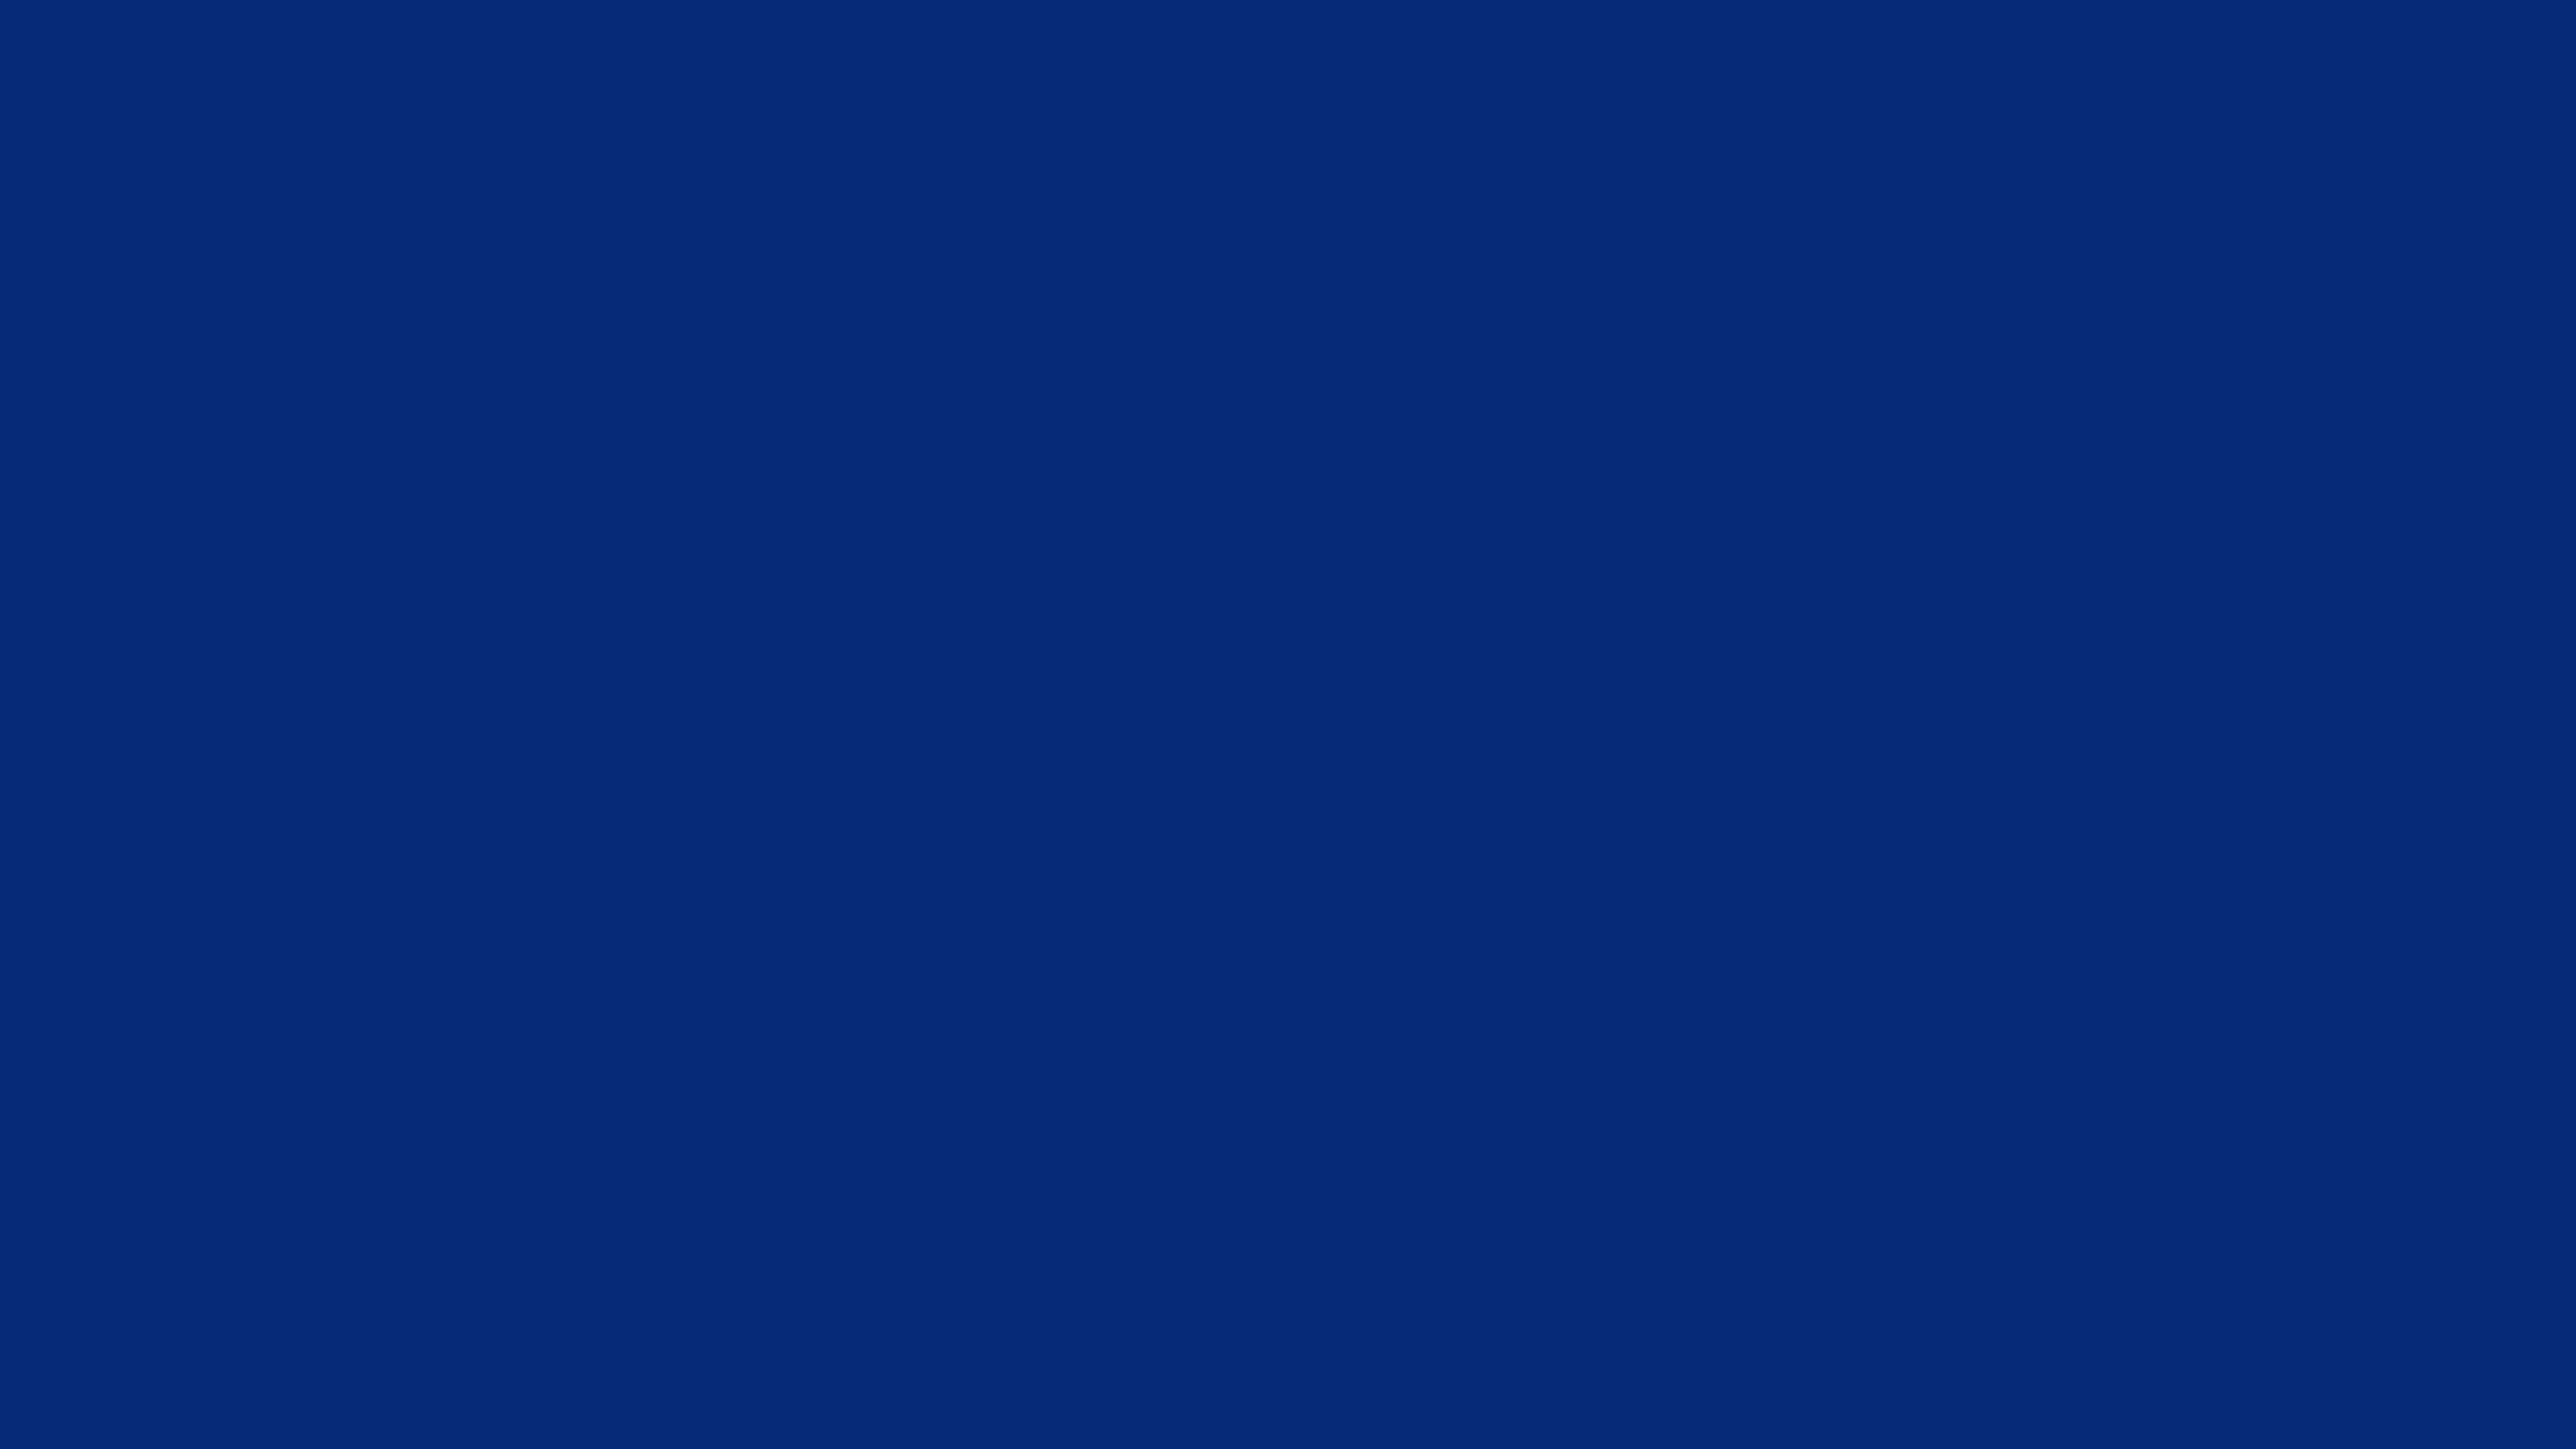 7680x4320 Catalina Blue Solid Color Background